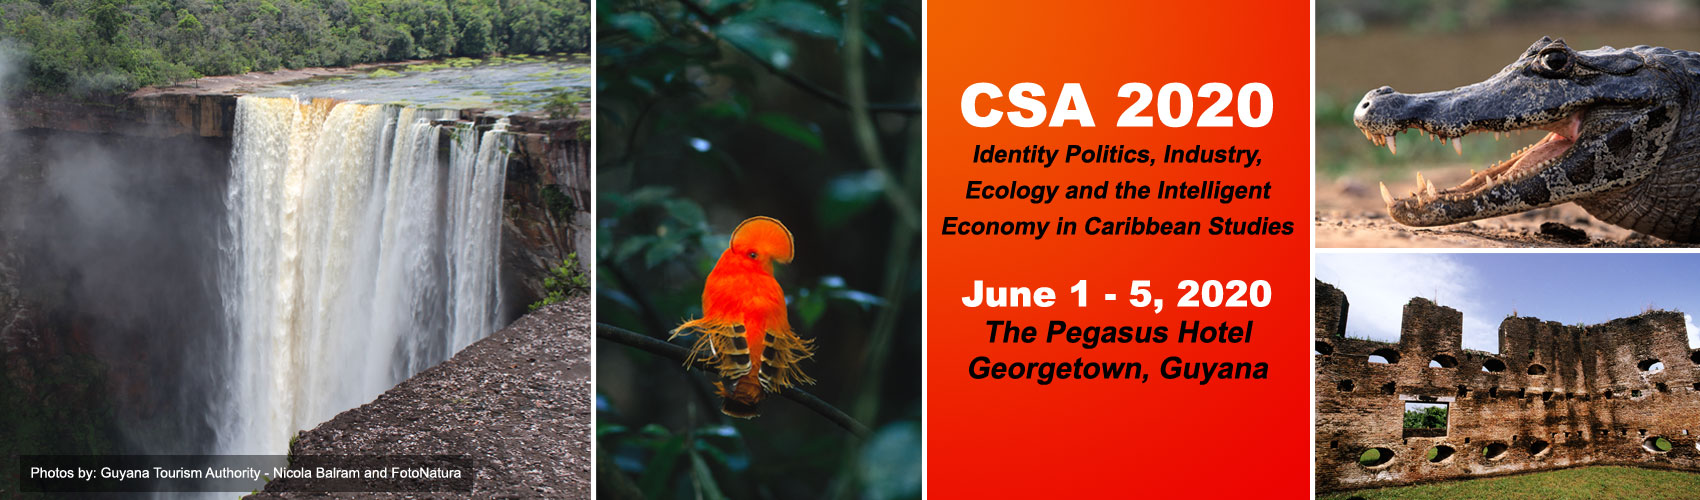 2020 CSA Conference